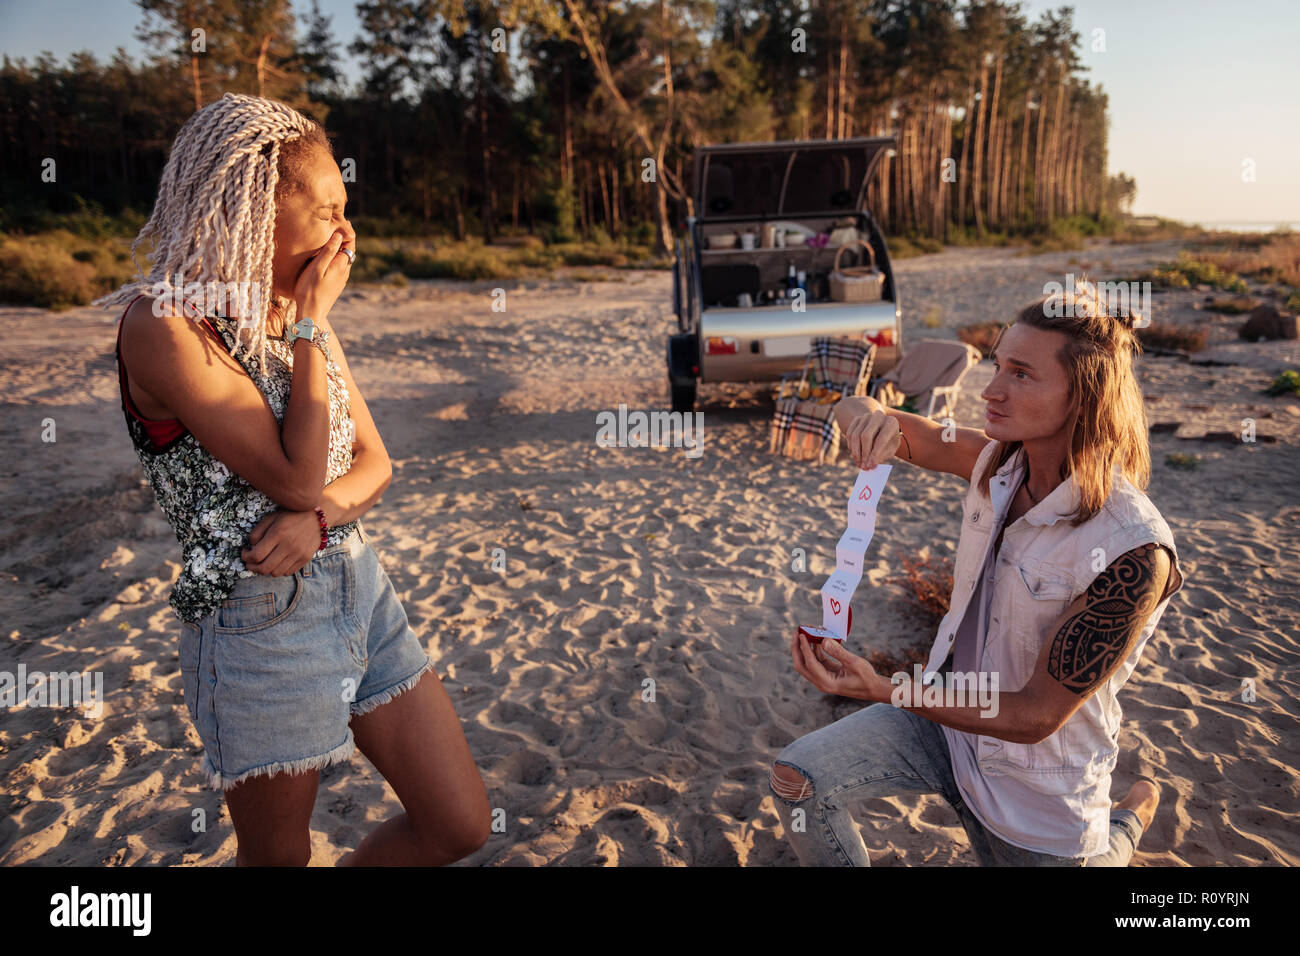 Woman with dreadlocks feeling sentimental listening to love confession Stock Photo